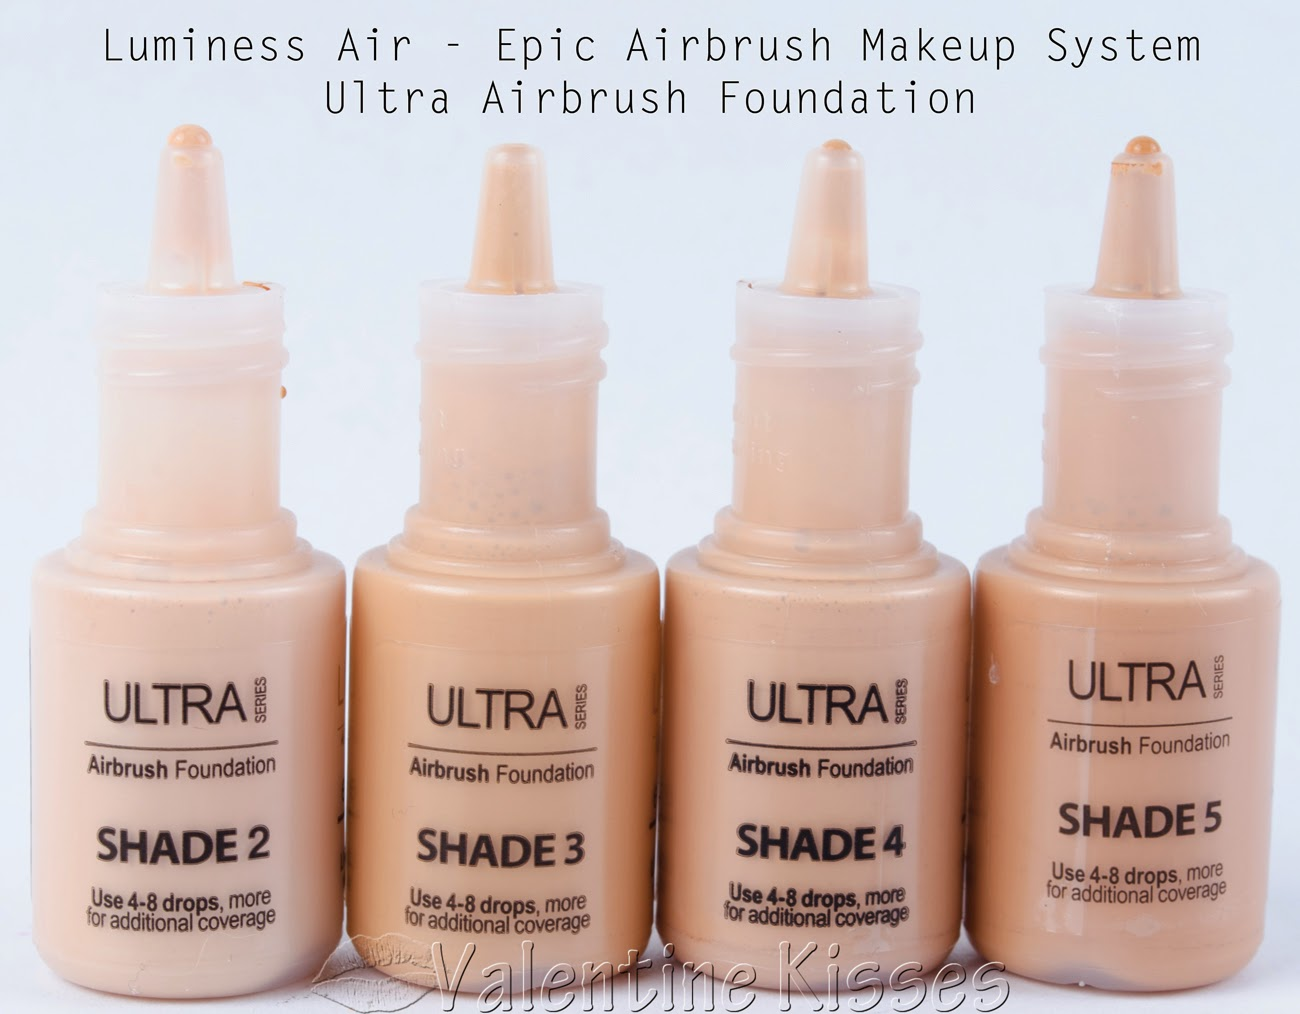 Belloccio airbrush makeup review